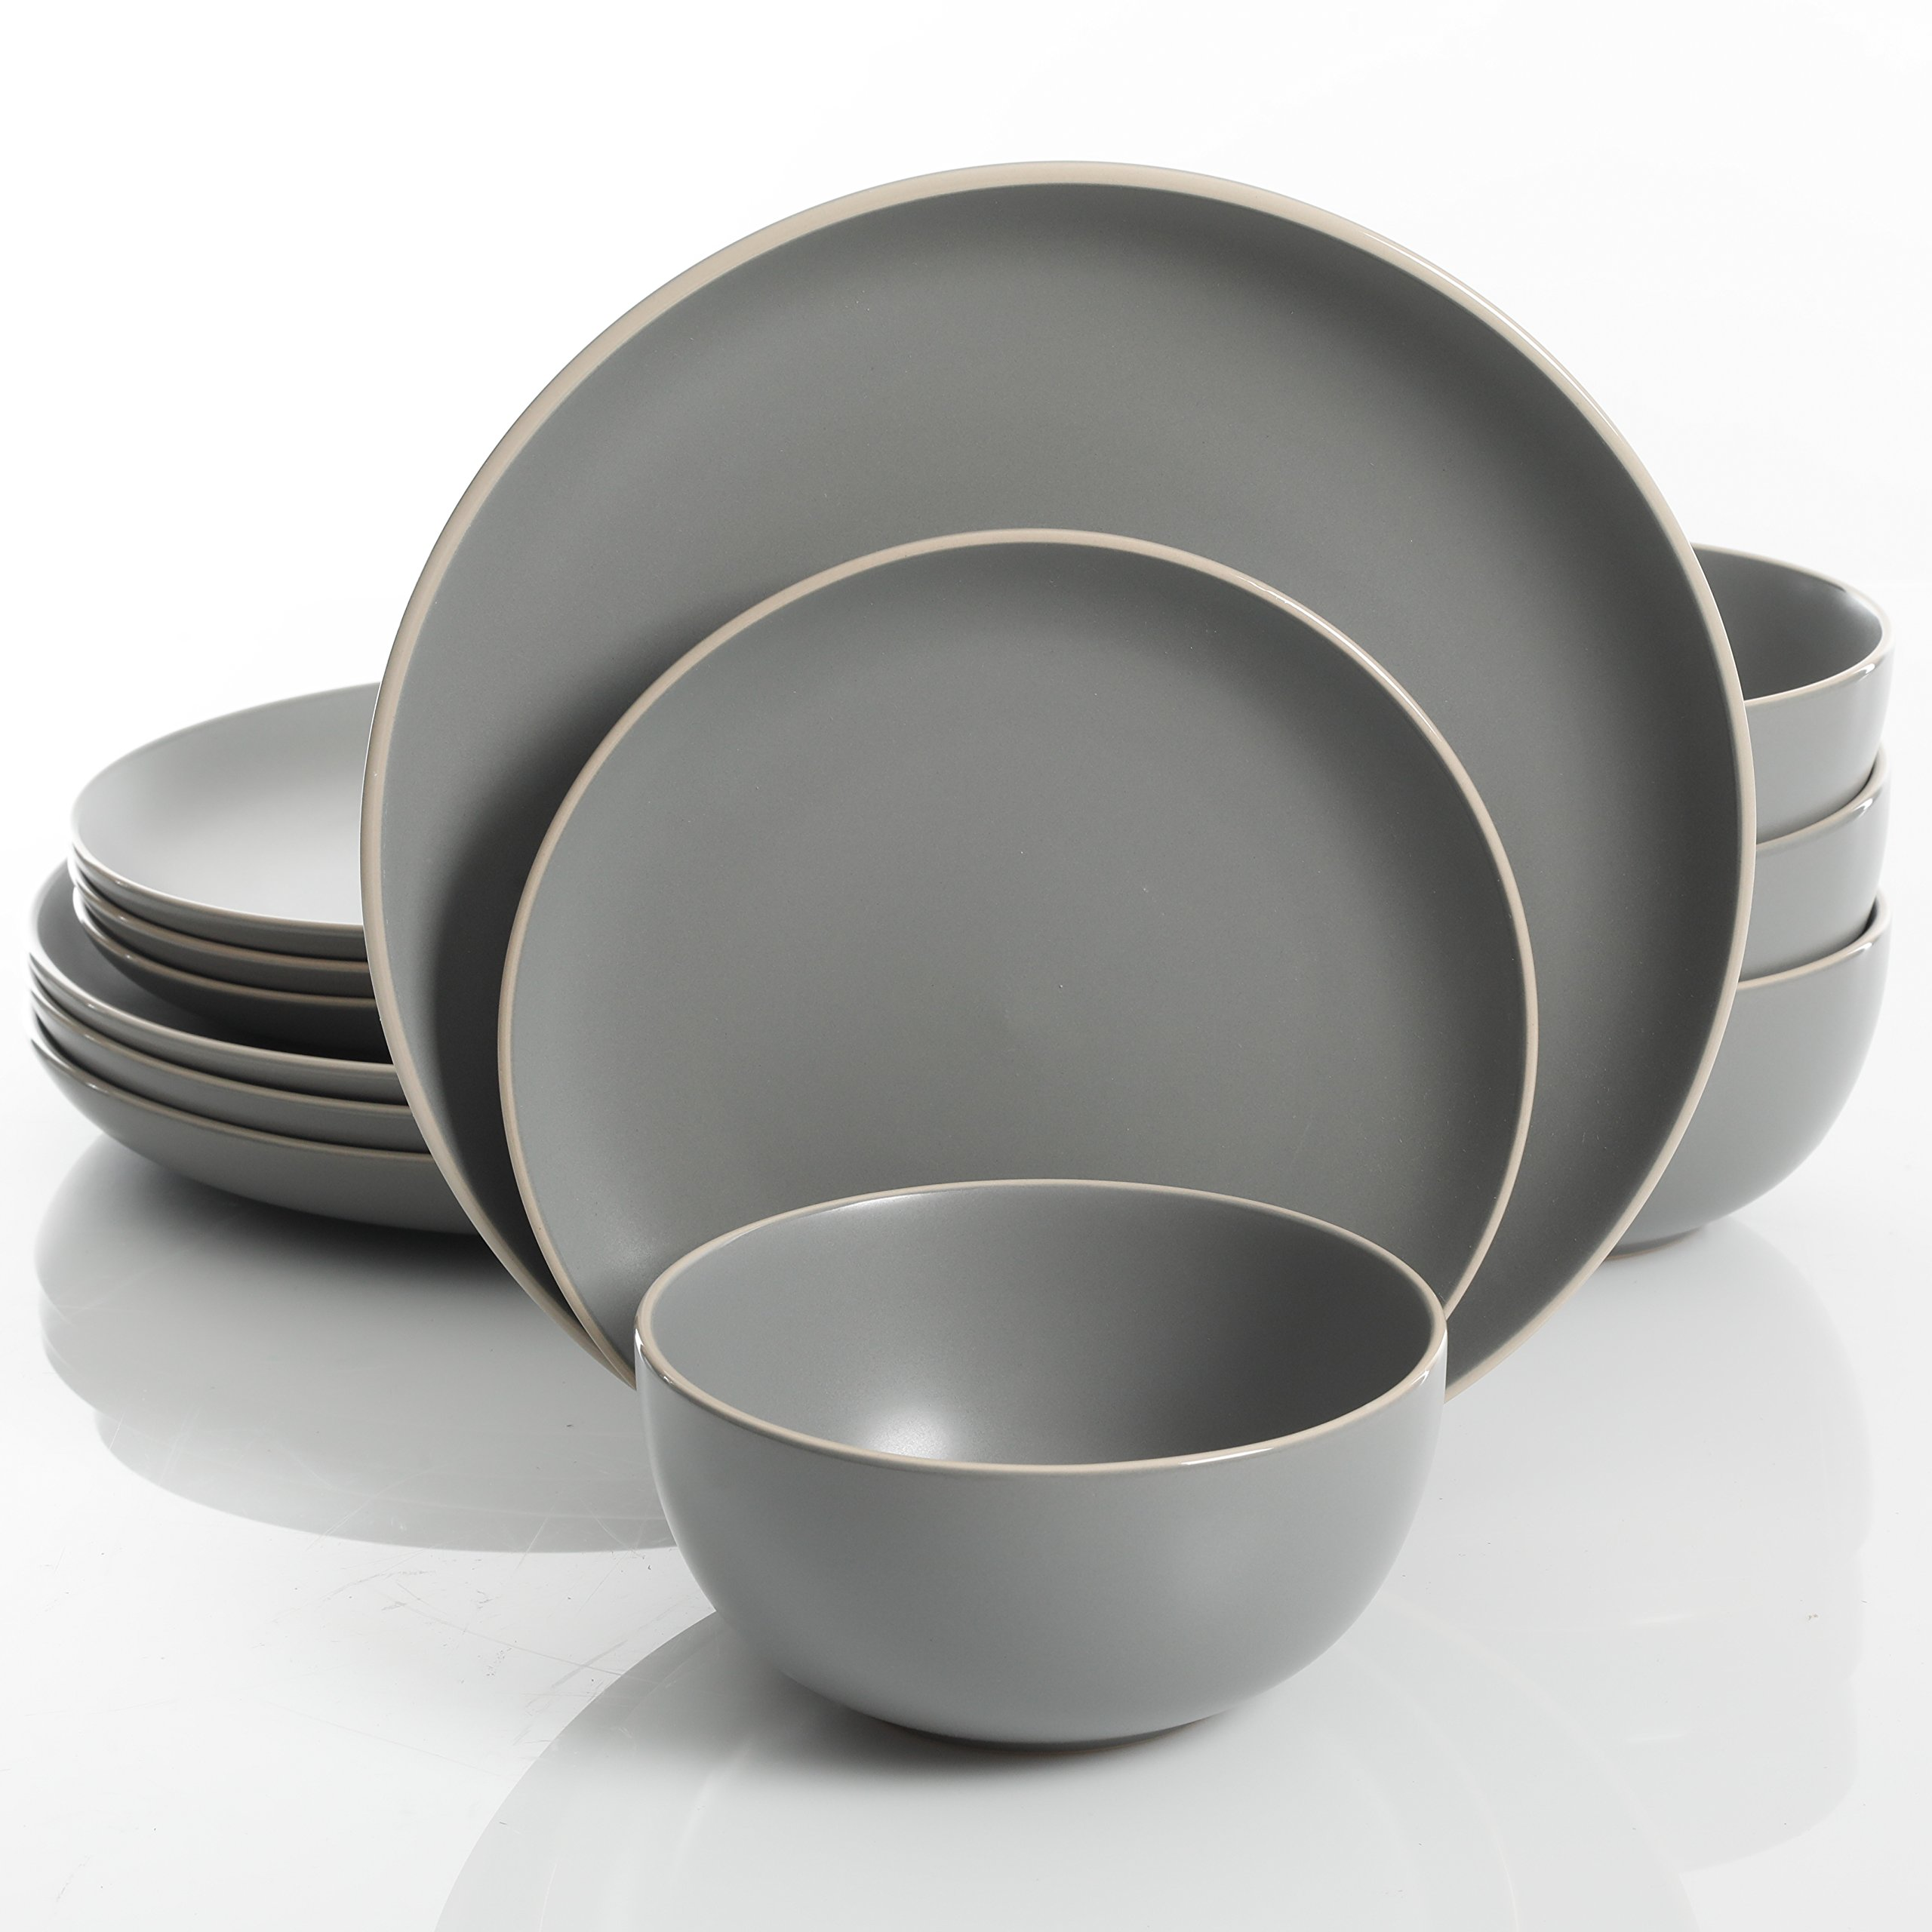 Gibson Home 114388.12RM Rockaway 12-Piece Dinnerware Set Service for 4, Grey Matte